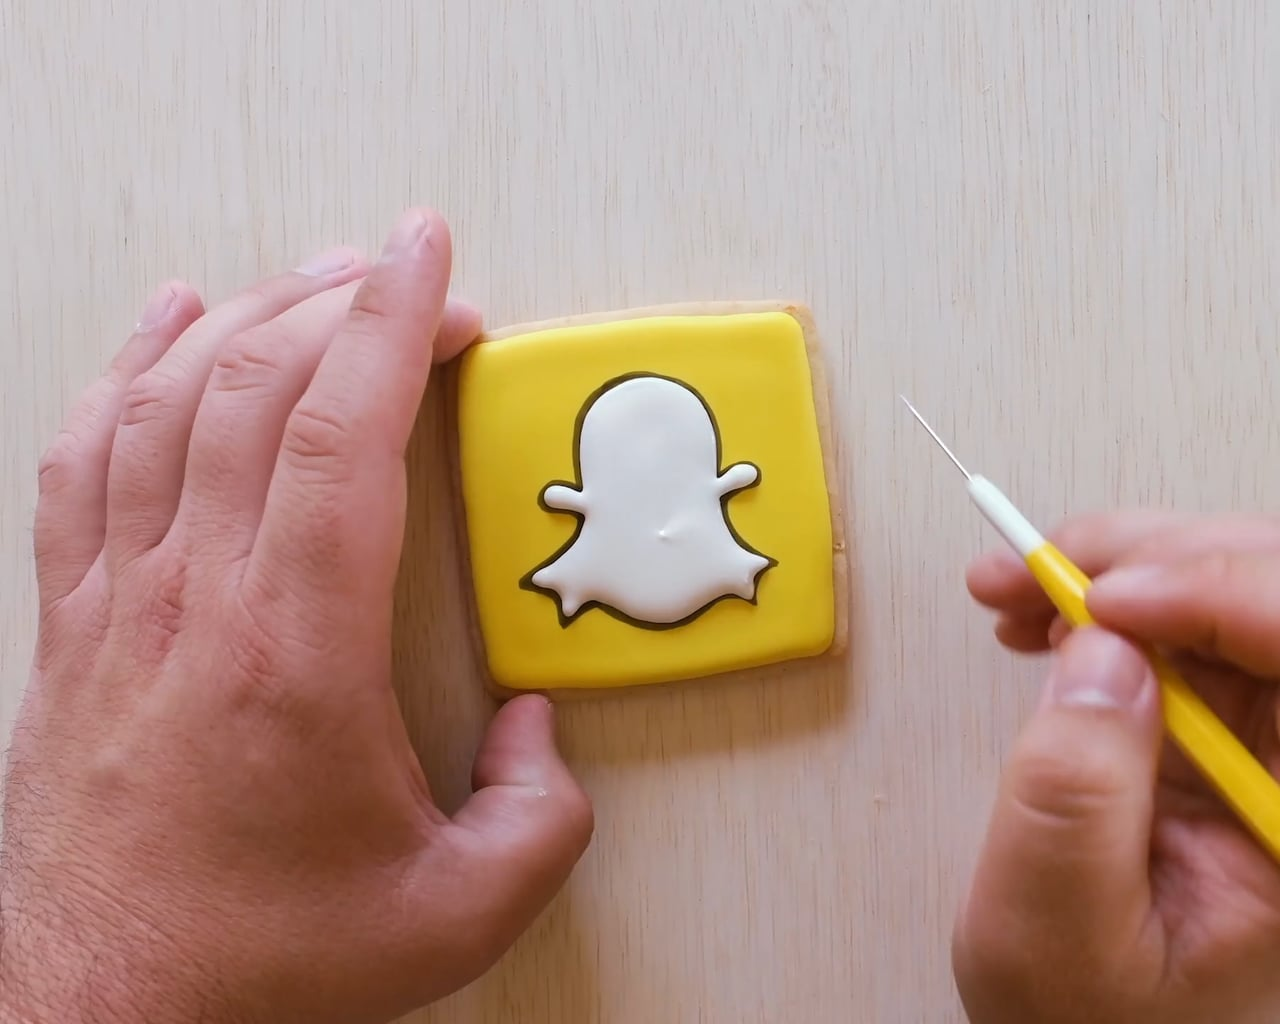 How to Grow Your Audience on Snapchat, According to Data From 217,000 Snaps